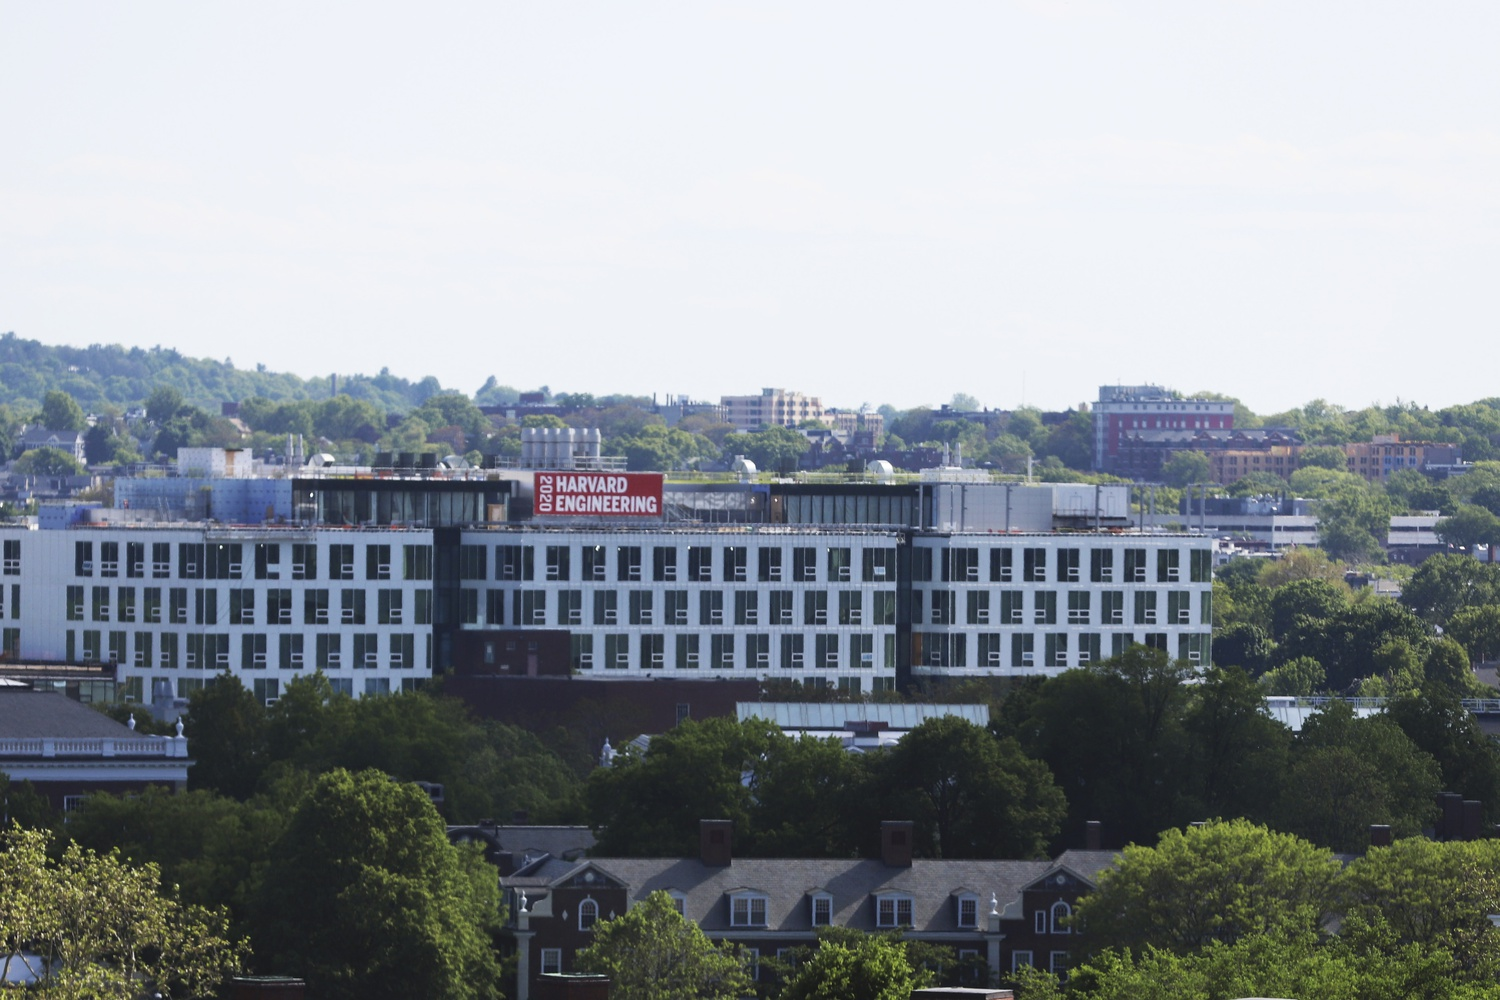 Harvard's new engineering and applied sciences campus in Allston, which is set to open in September 2020, is visible from the Cambridge side of the Charles River.